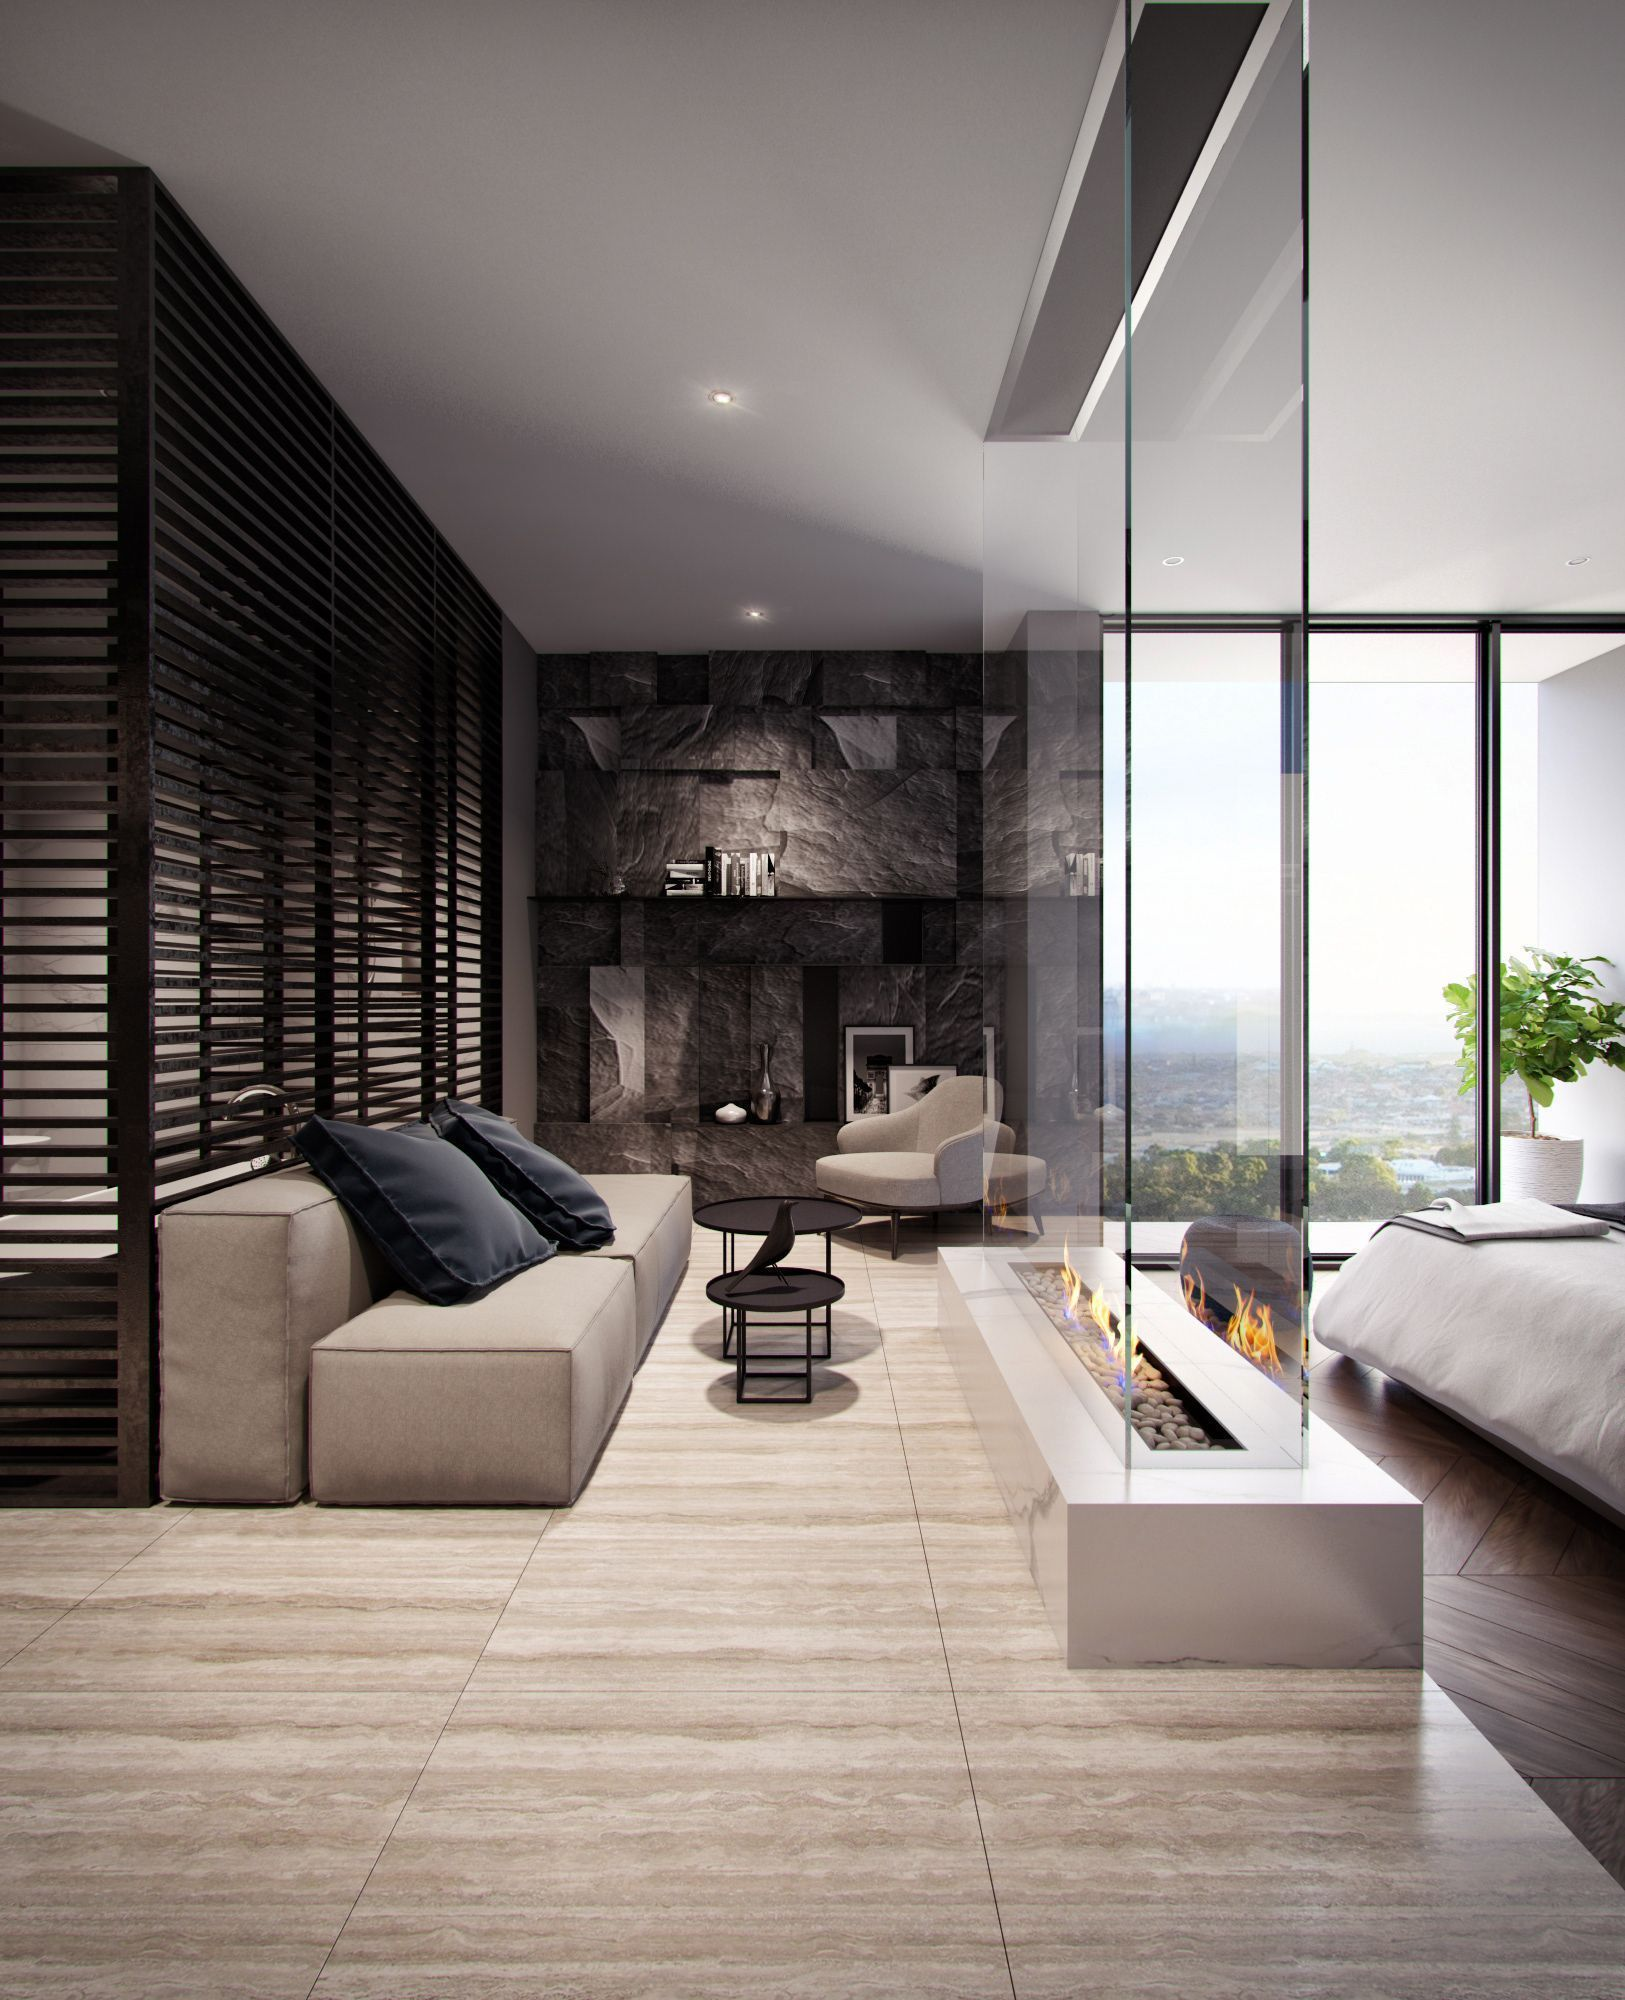 Homedesignideas Eu: Let Us Help You To Style Your Bedroom Design For Fall With